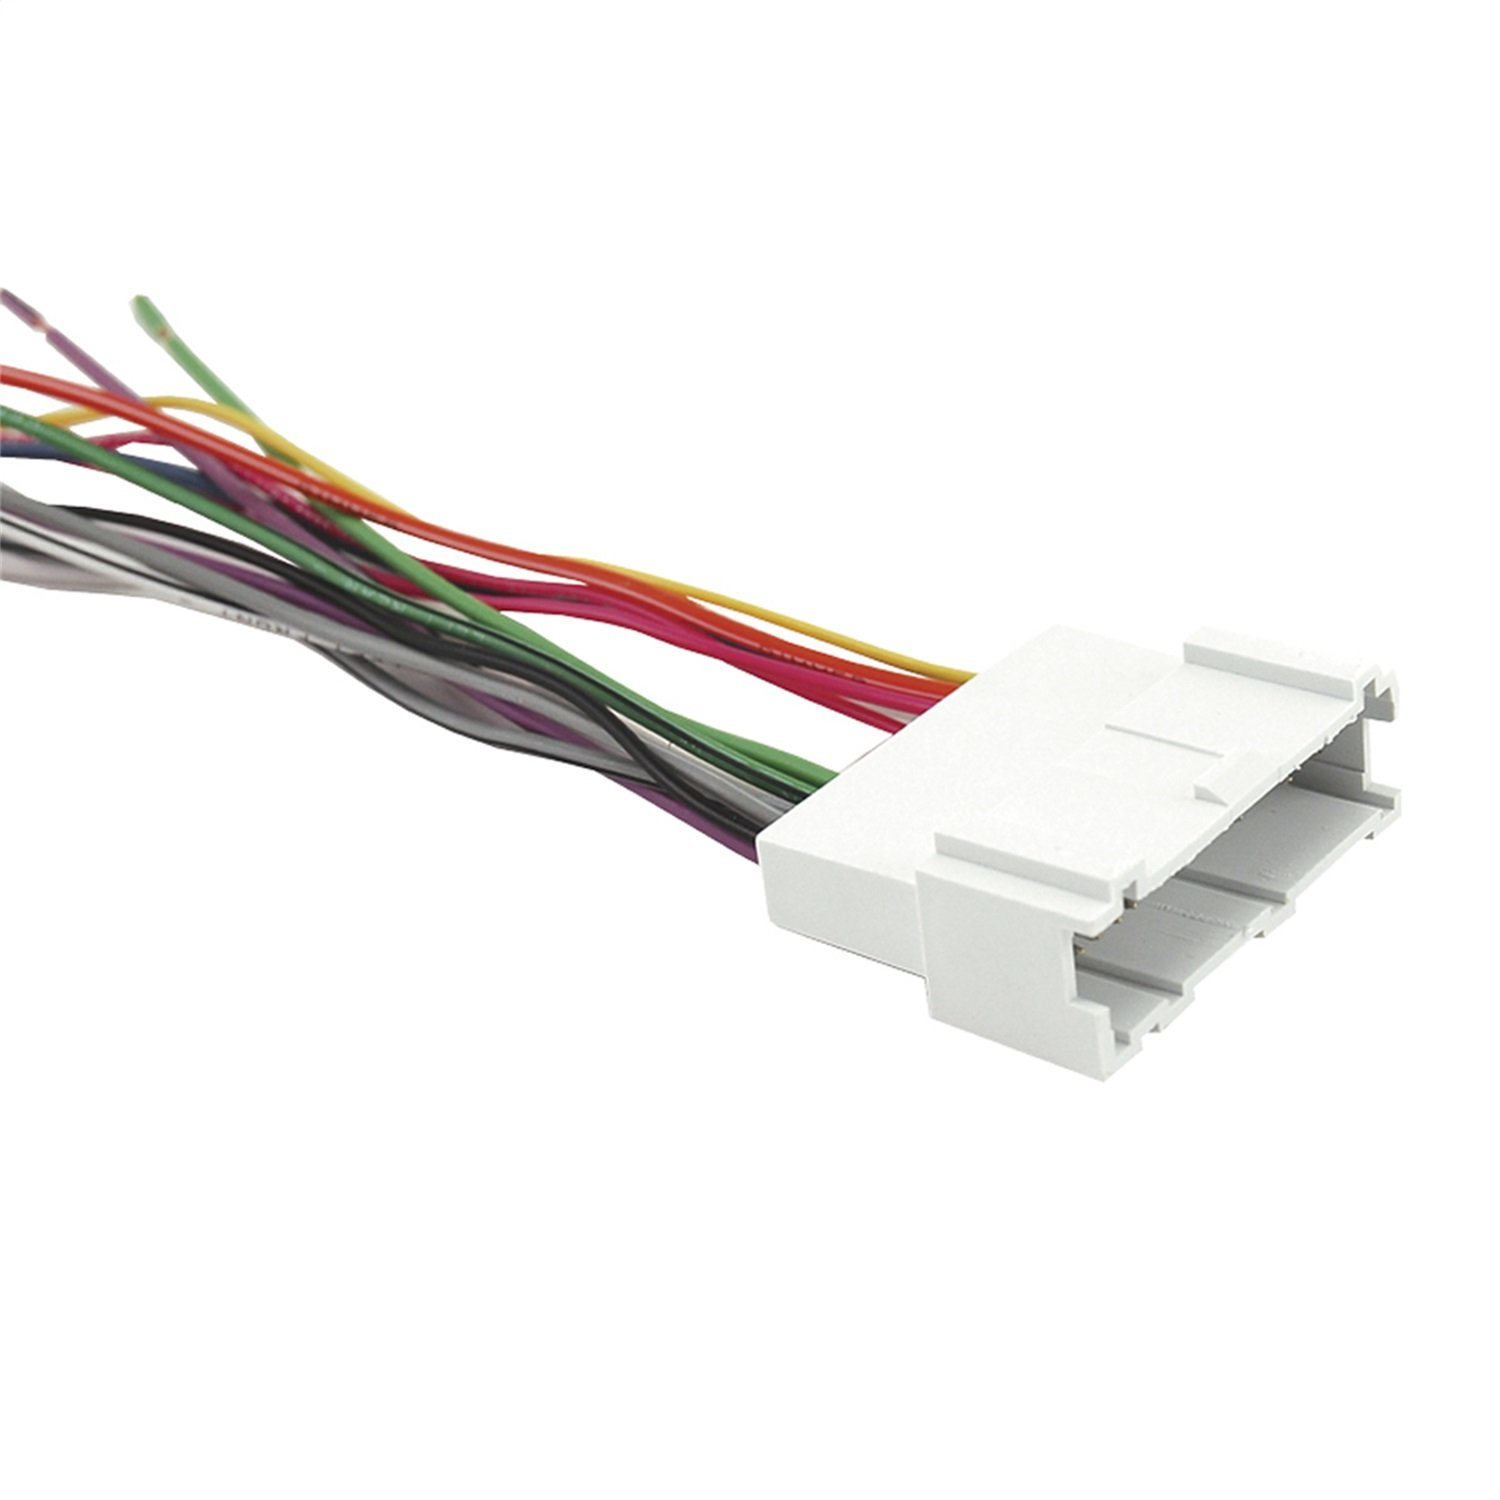 Metra GMRC-03 96-02 Cadillac CL2 Harness Adapter with Chime